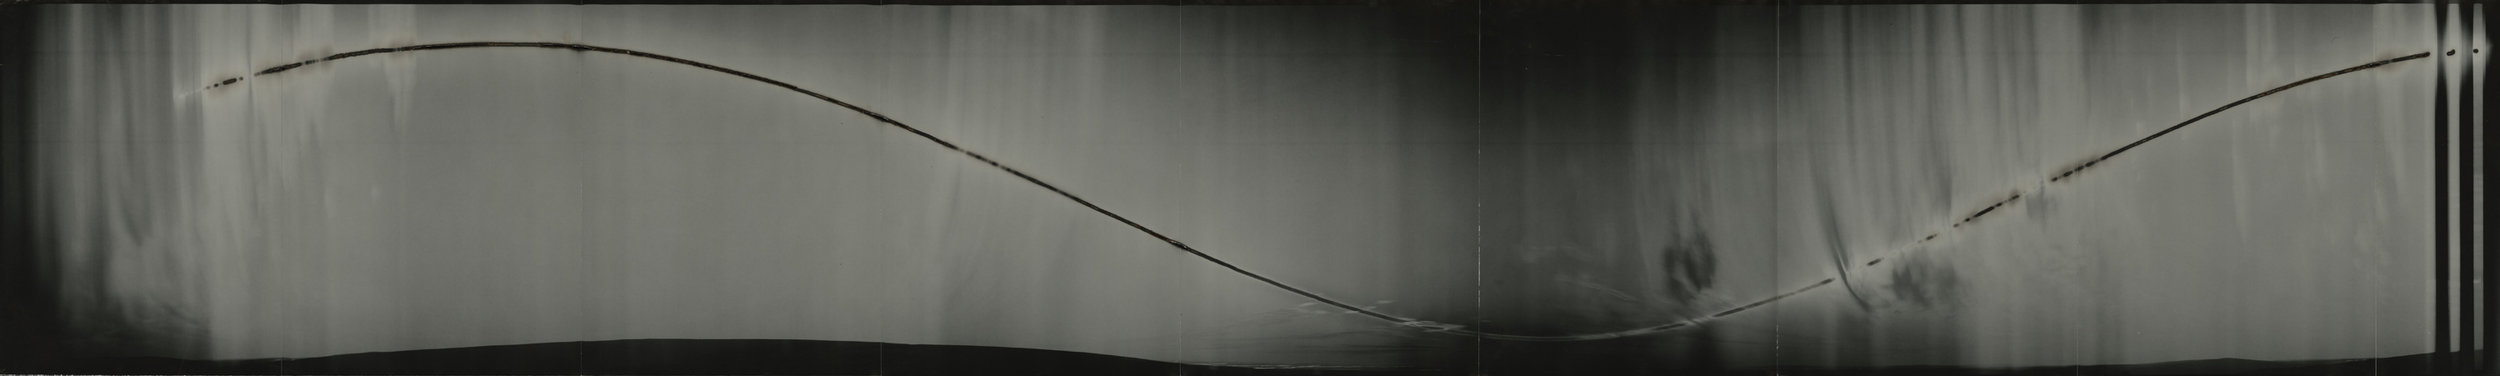 "Cirkut #10 (North Slope, Alaska, within the Arctic Circle, 28 hours), 2014. 14""x 92"". Unique constructed gelatin silver paper negative. Personal collection."